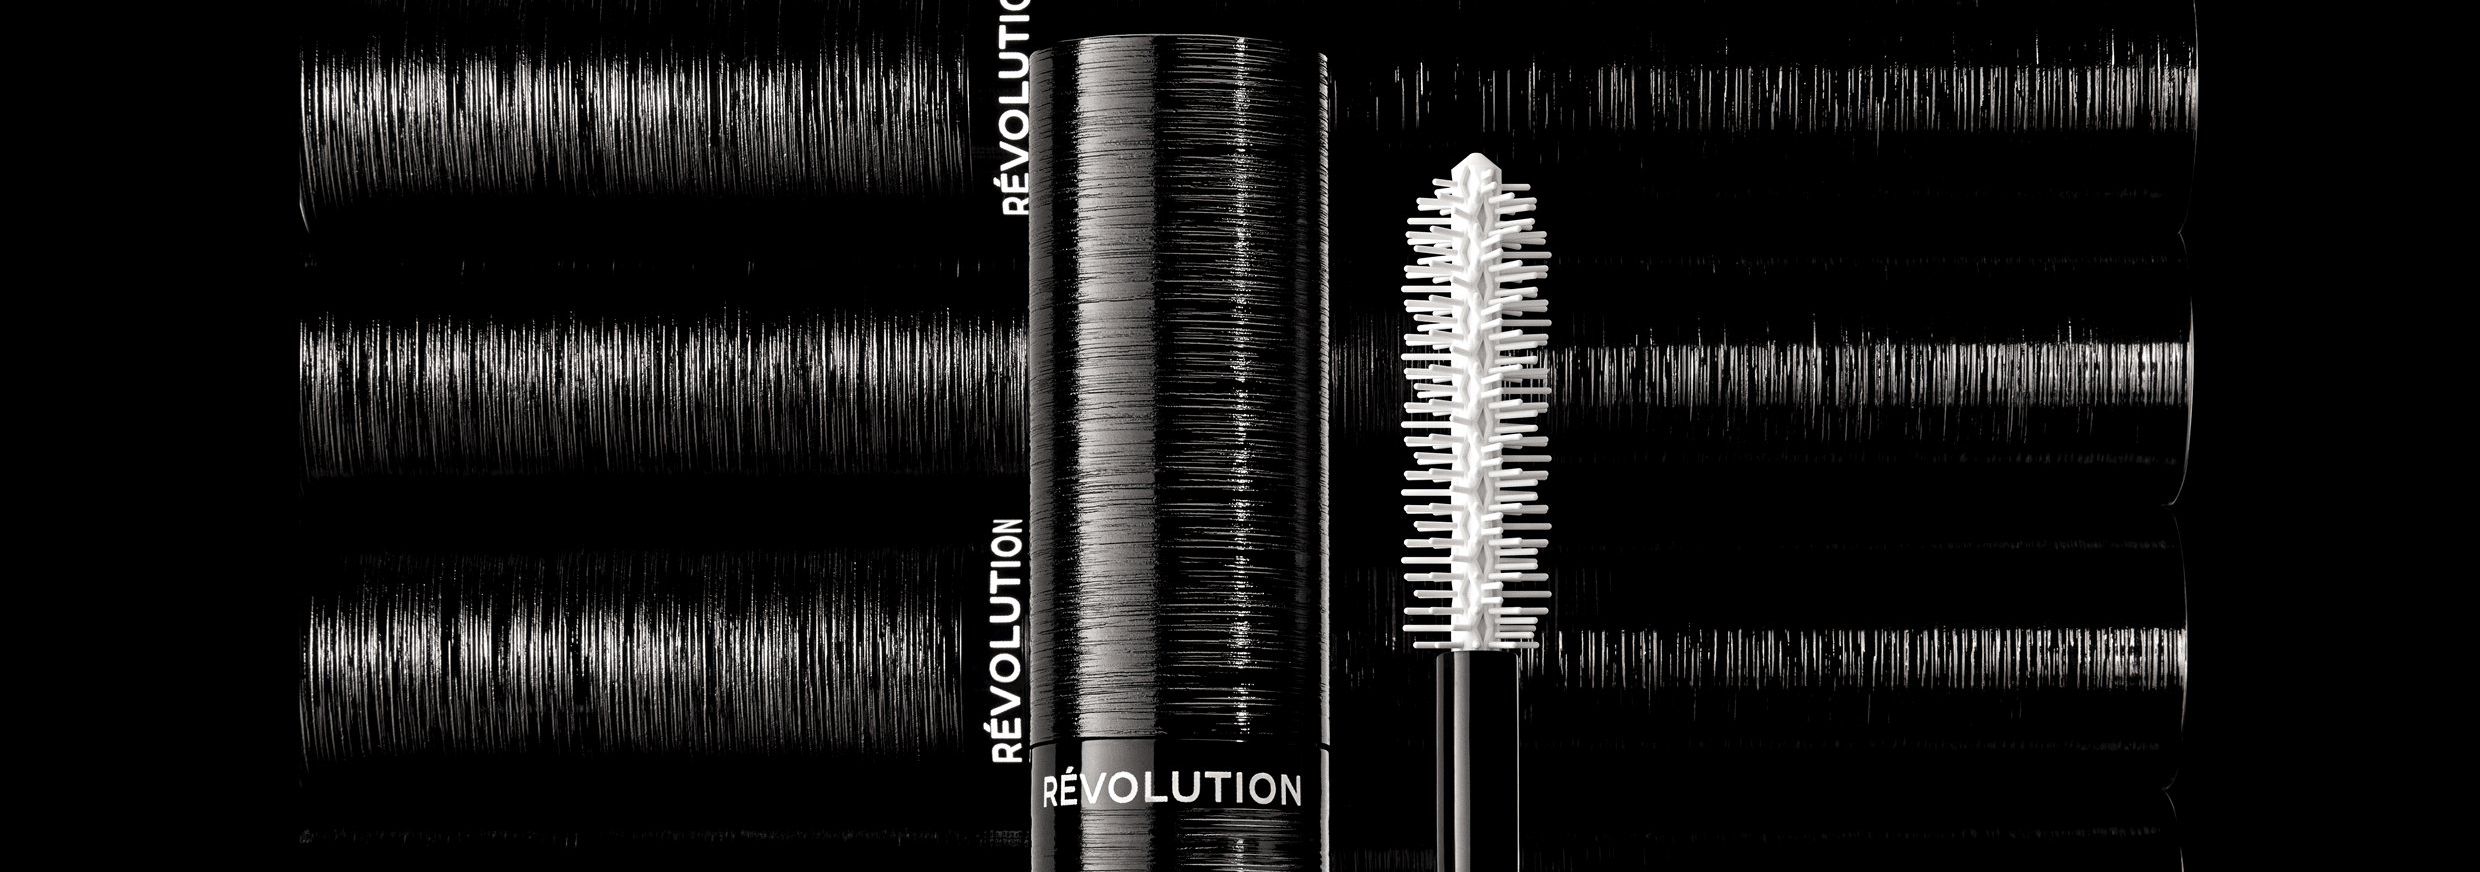 A new addition to the many wonders of the marriage of tech and beauty is the CHANEL Le Volume Revolution mascara.